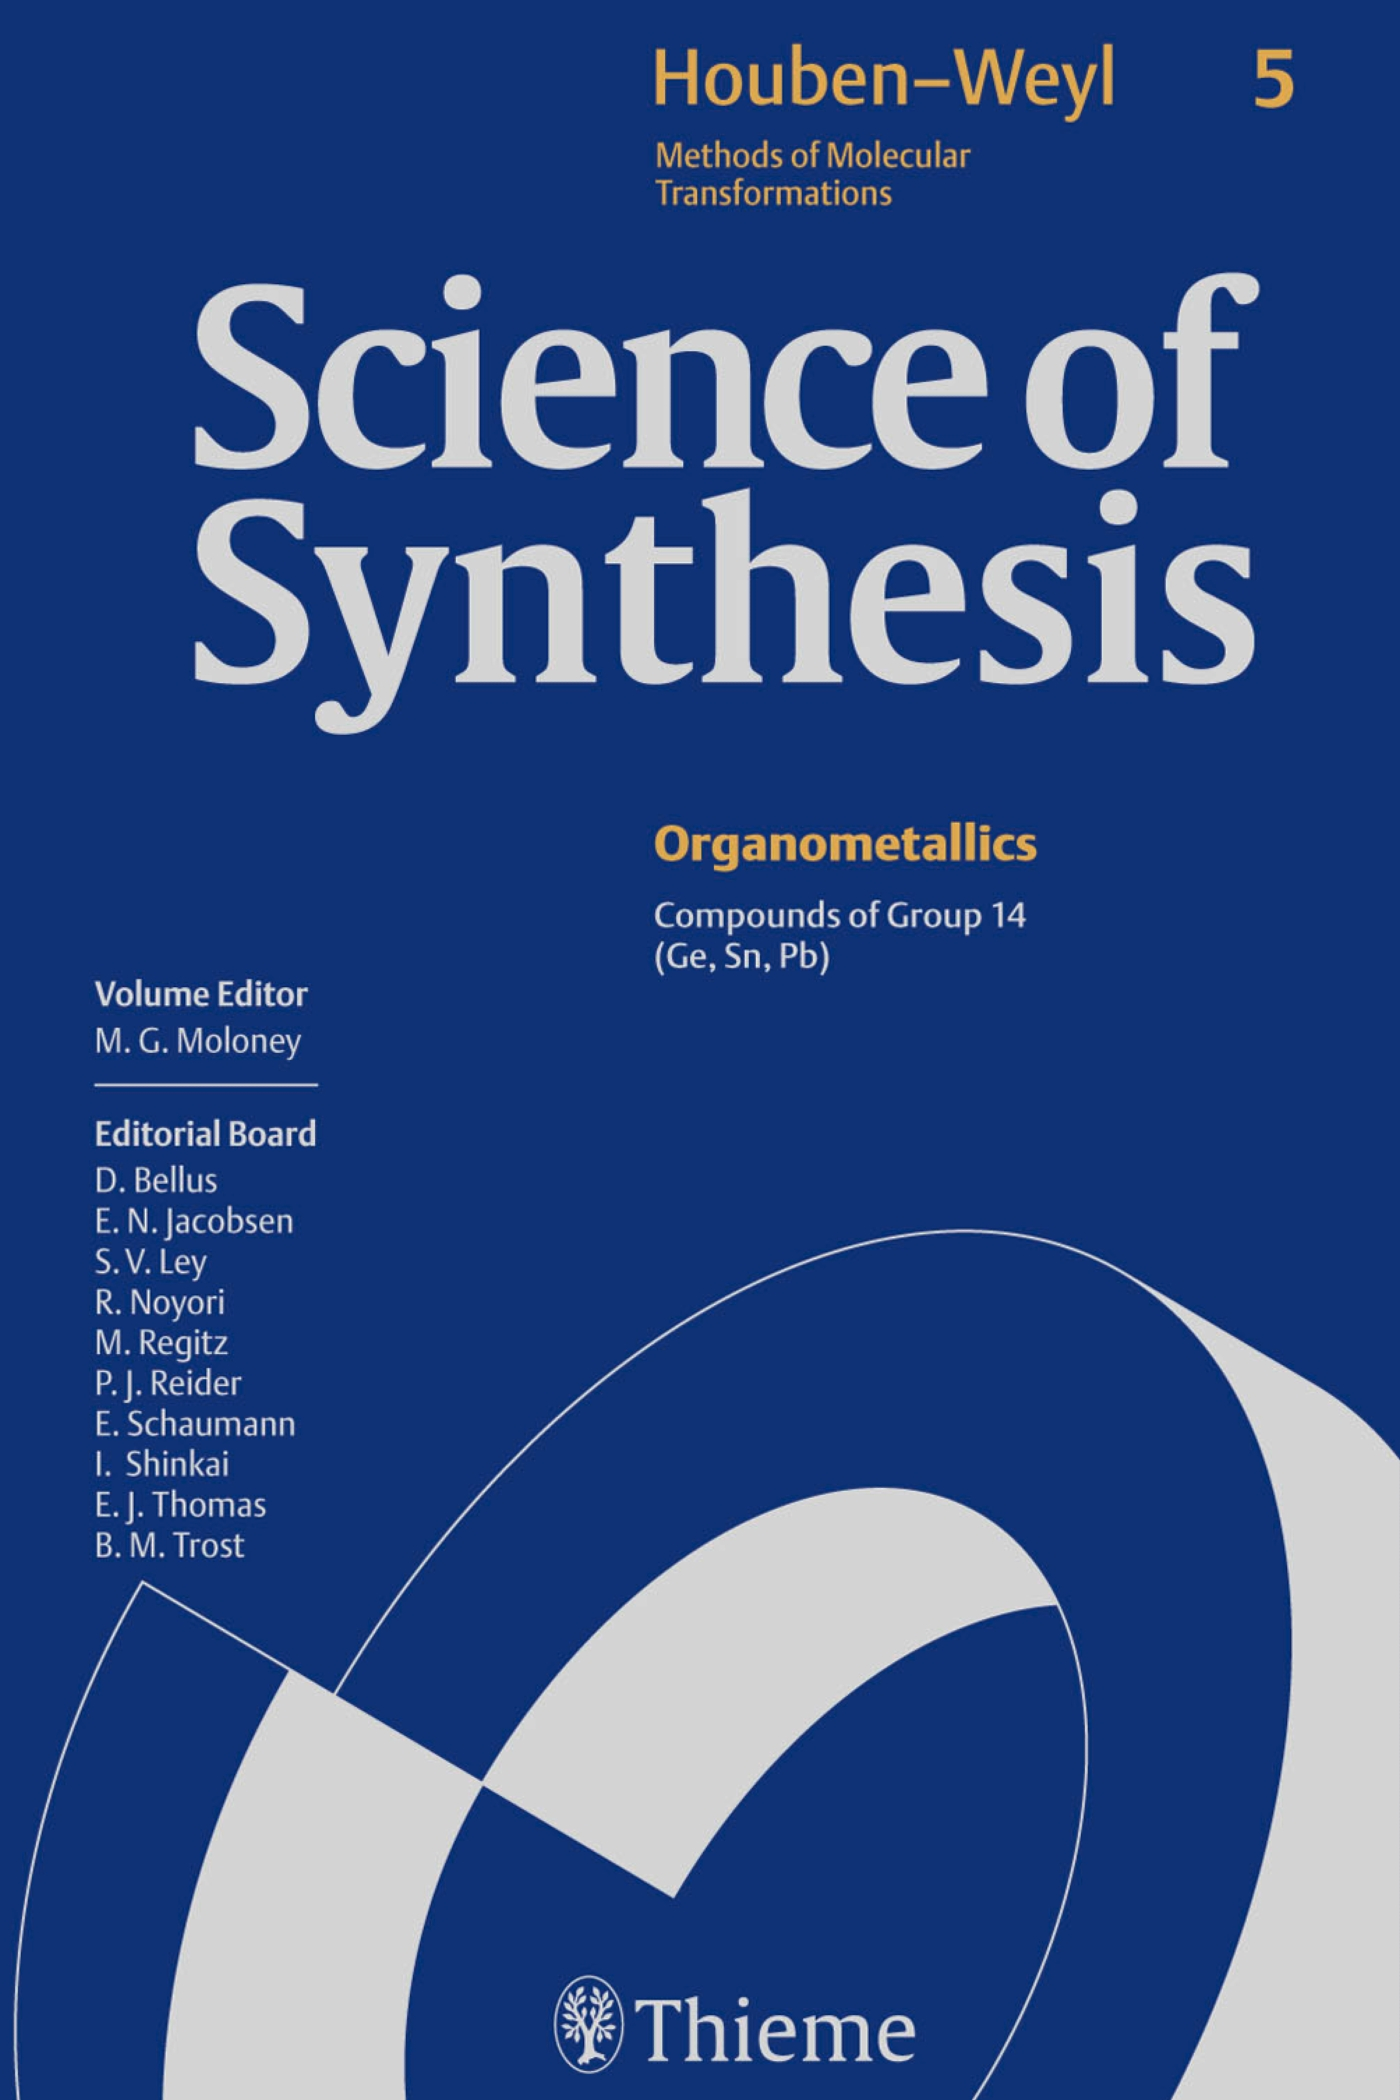 Science of Synthesis: Houben-Weyl Methods of Molecular Transformations  Vol. 5